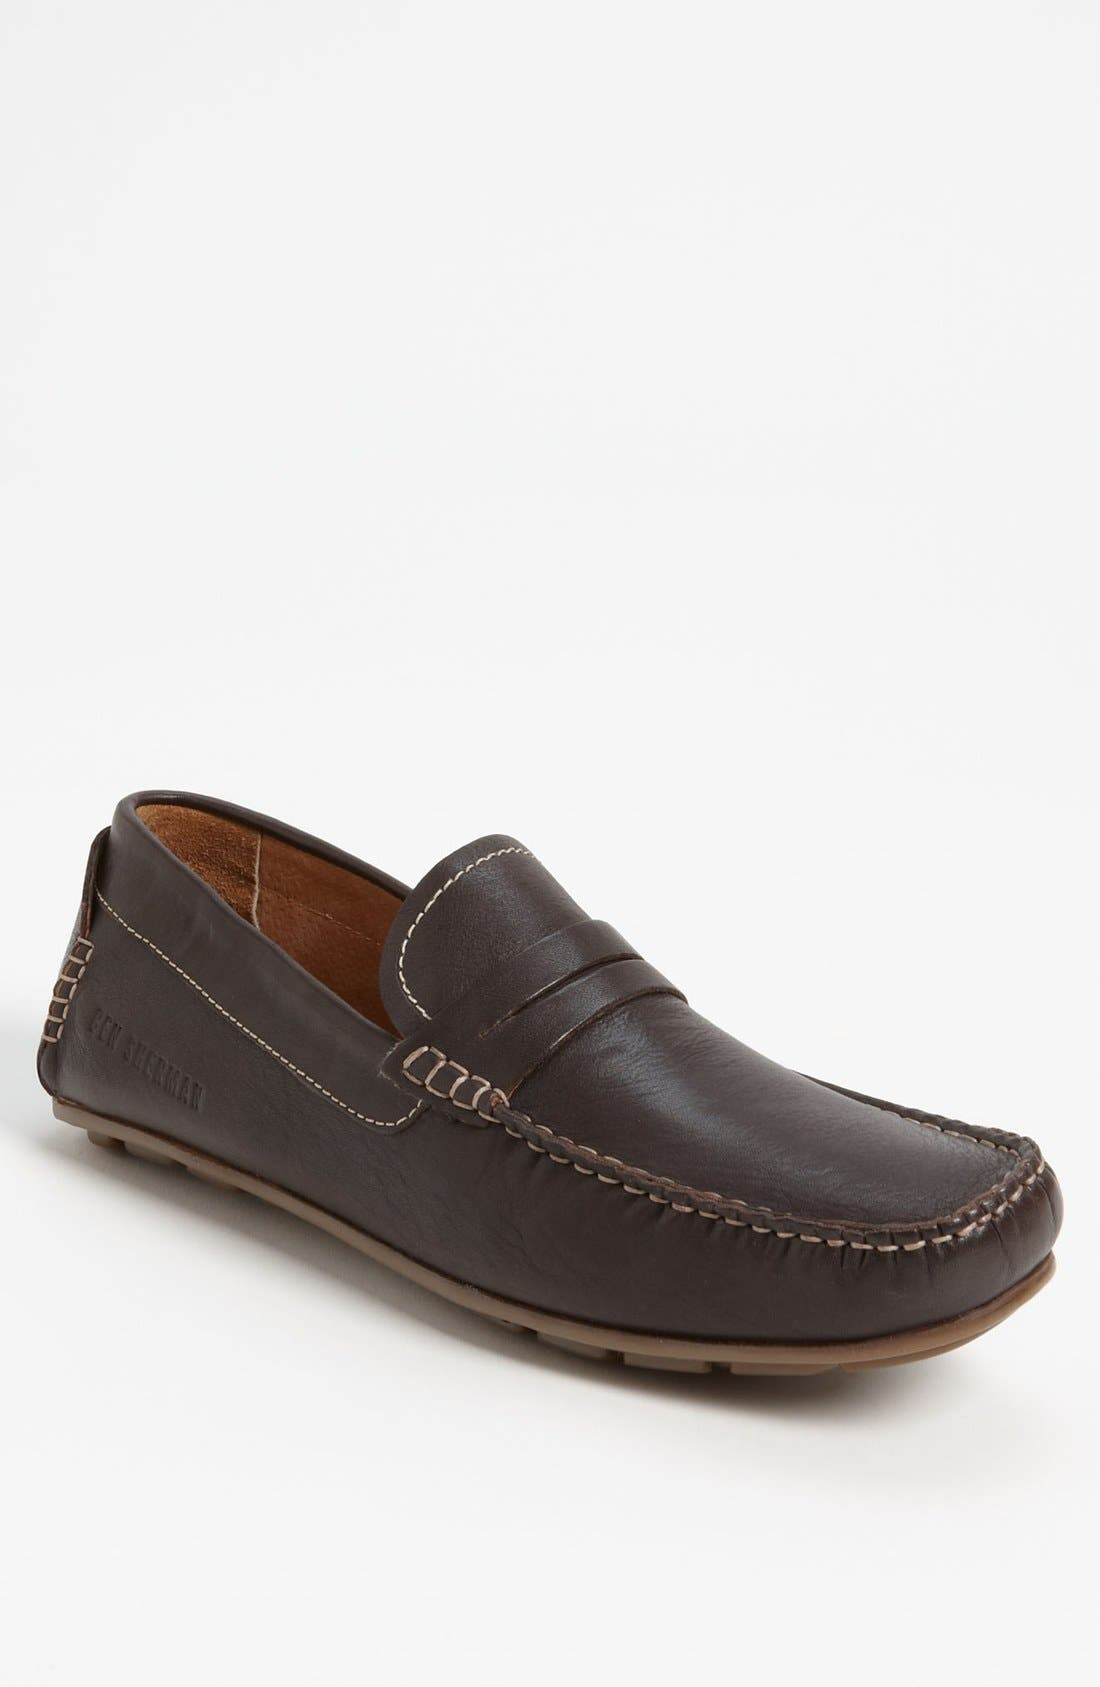 Alternate Image 1 Selected - Ben Sherman 'Kaleb' Loafer